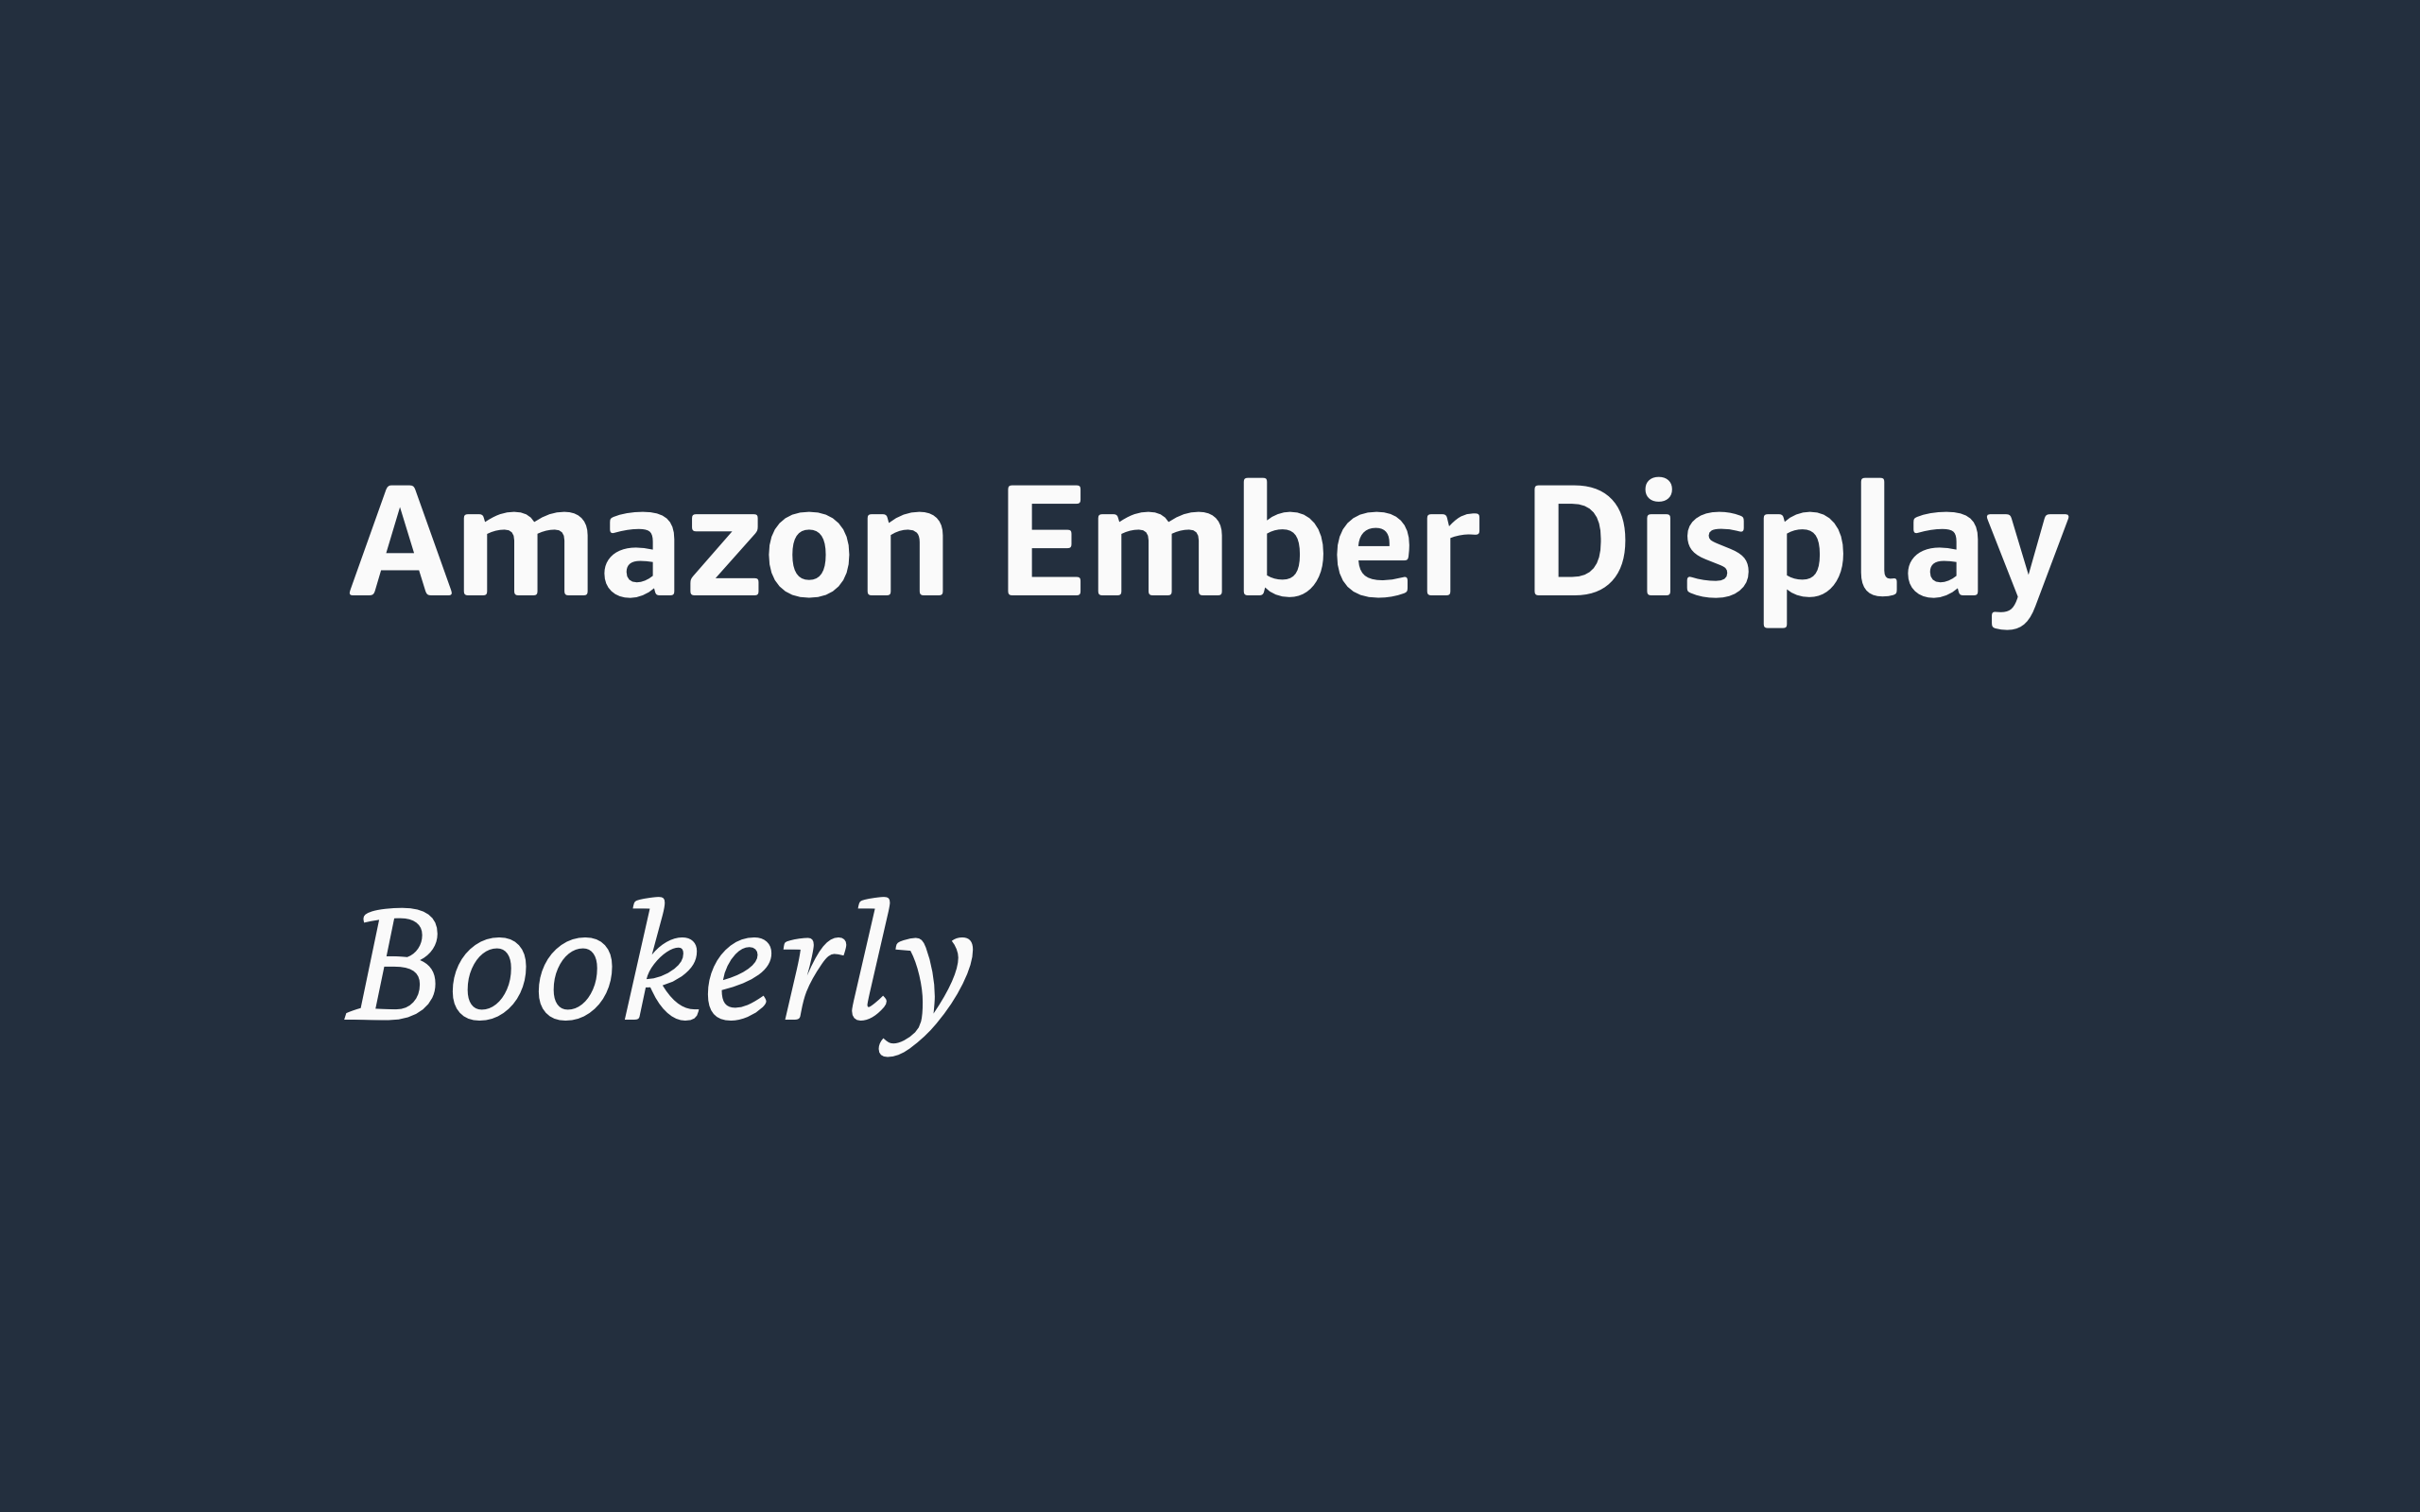 Image showcasing Amazon Ember and Bookerly fonts